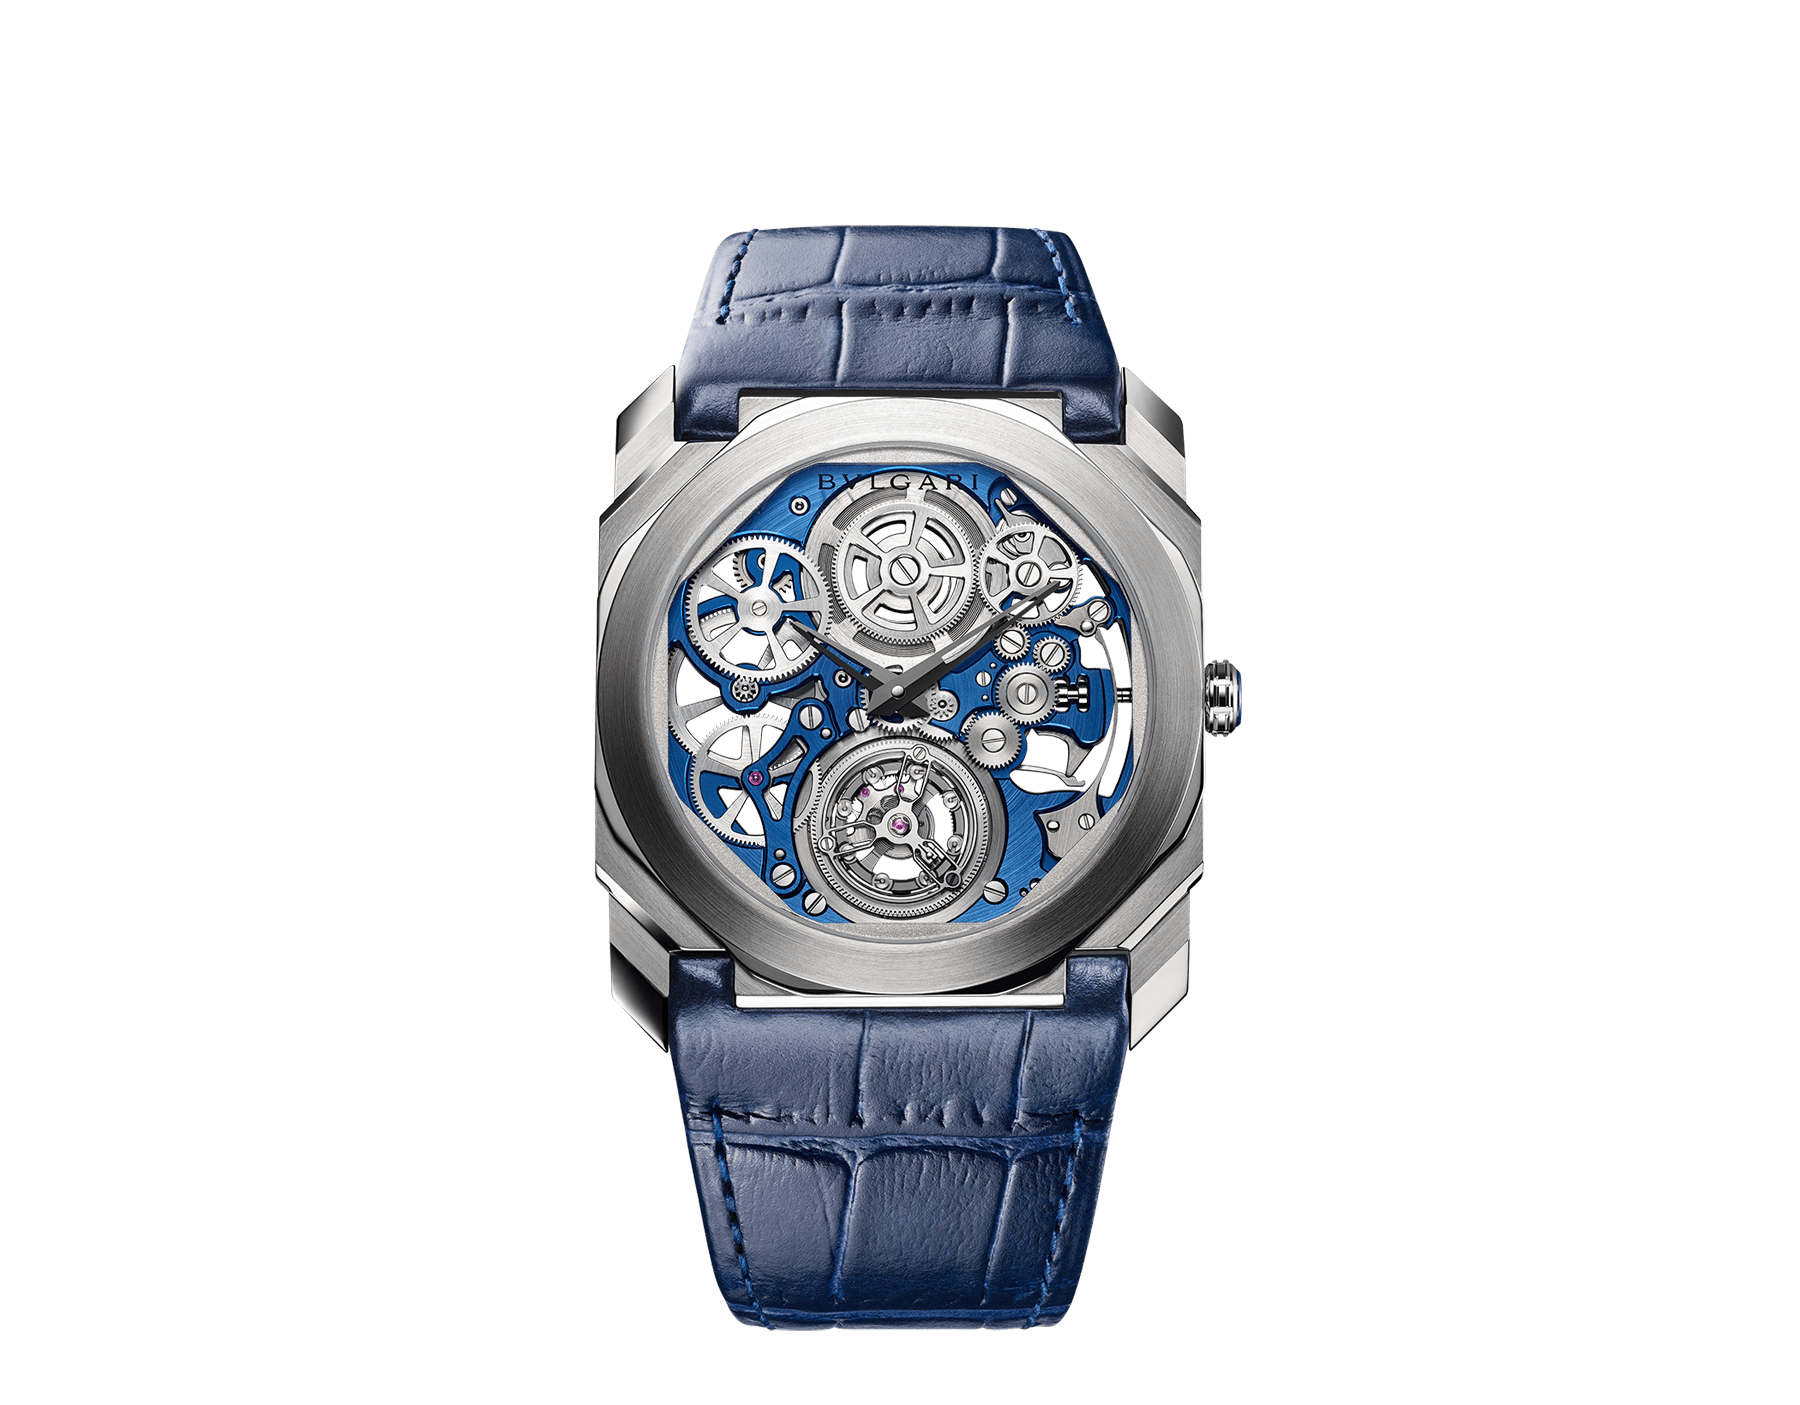 Octo Finissimo Tourbillon Skeleton watch with extra-thin mechanical movement with manual winding and flying tourbillon, 40 mm platinum case with transparent case back, platinum crown with blue ceramic insert, blue skeletonized caliber, blue alligator bracelet and platinum ardillon buckle 103188 image 1